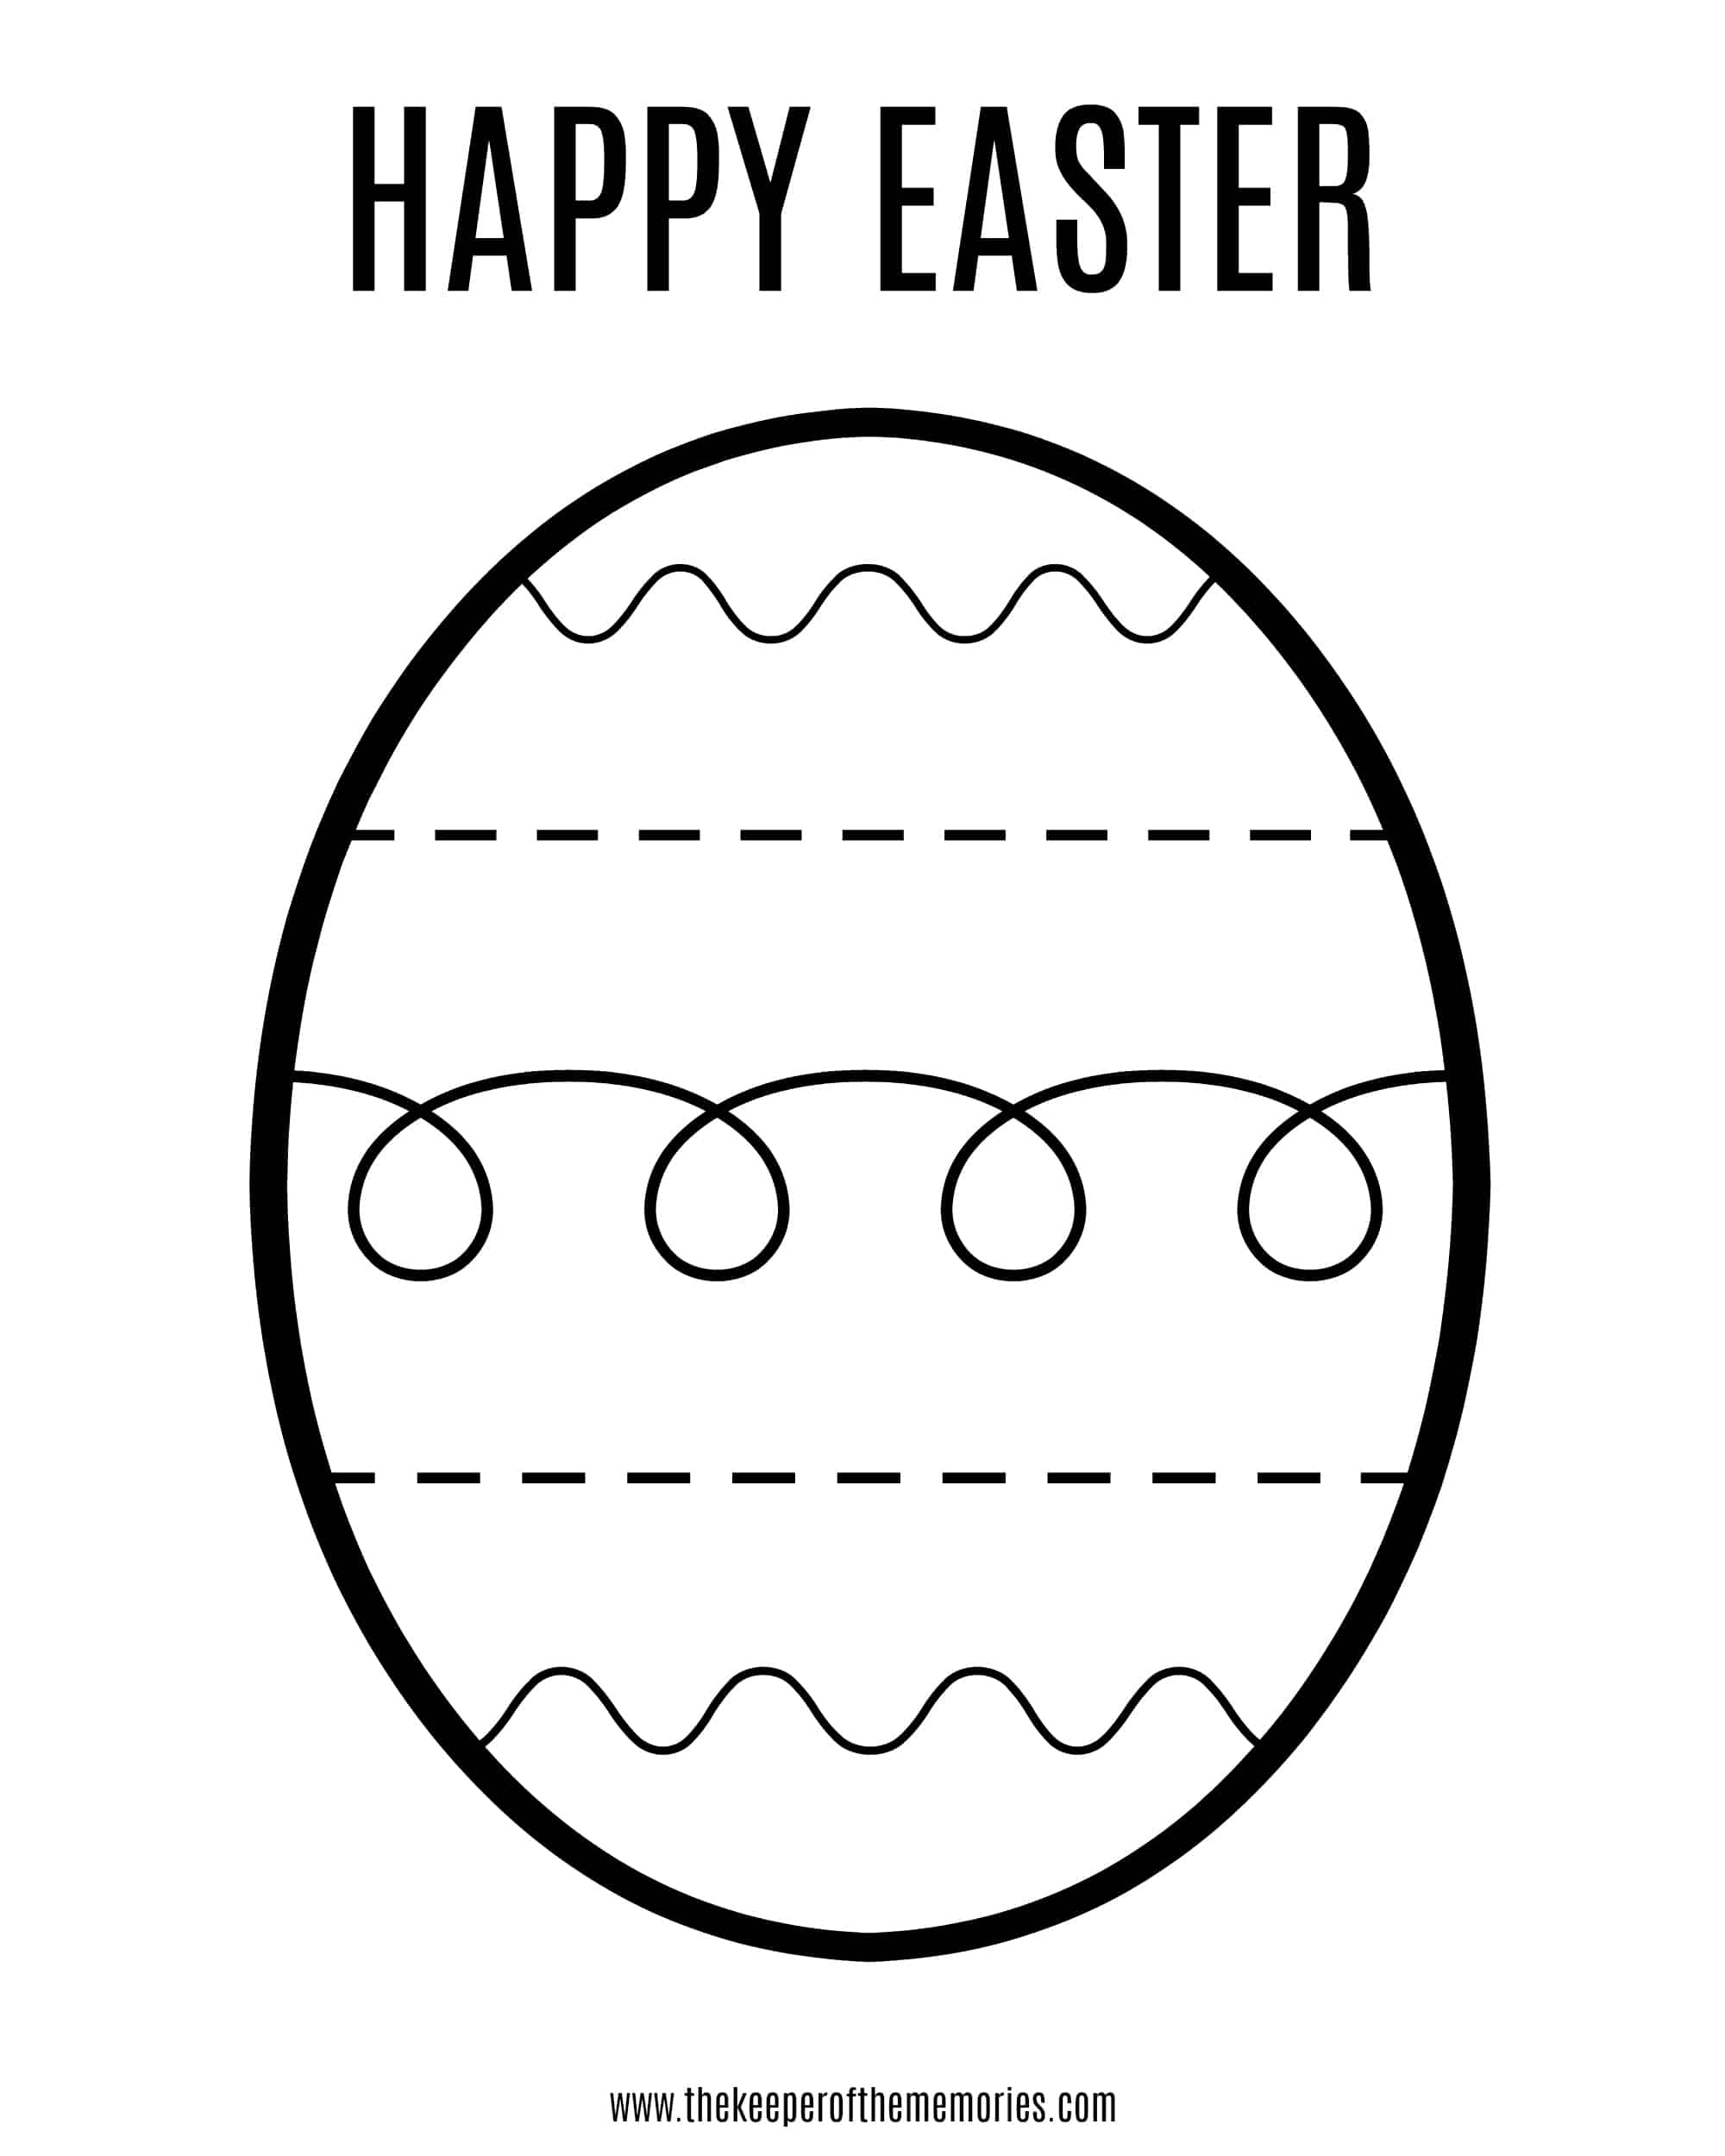 Free Printable Easter Coloring Sheet for Little Kids - The ...